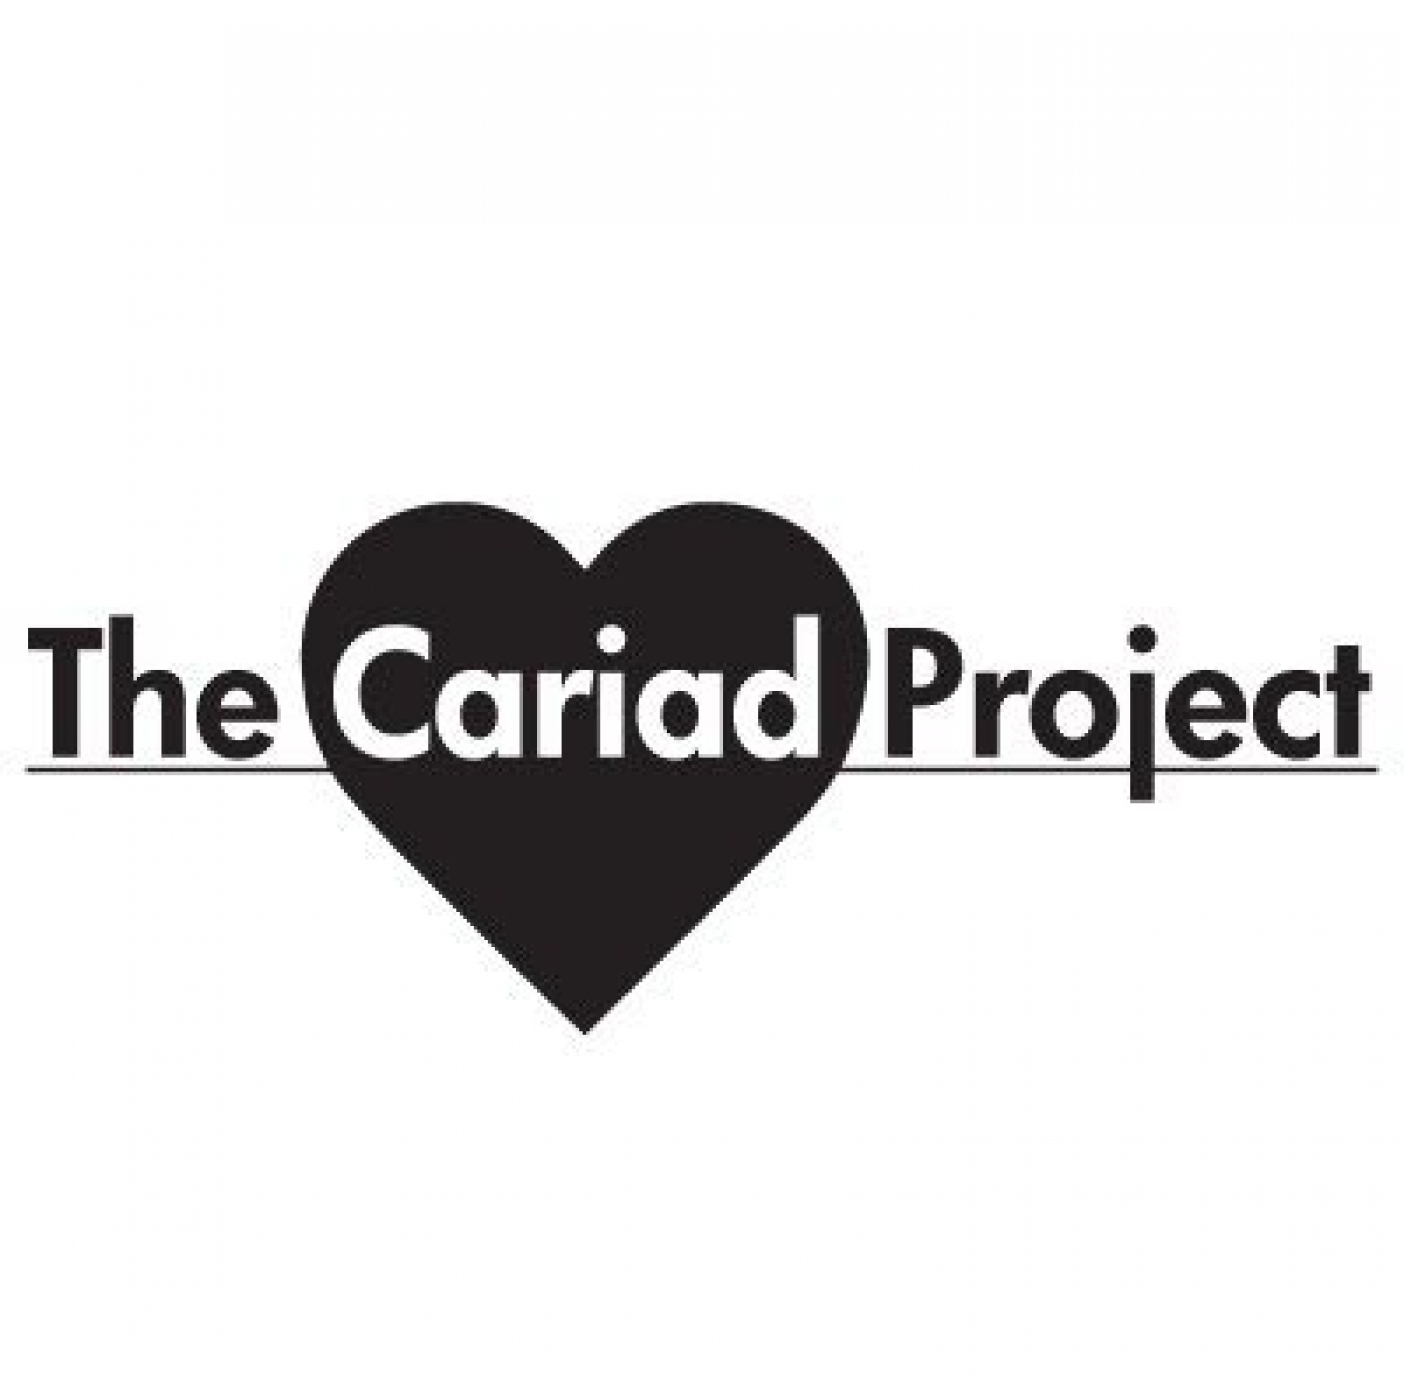 Cariad Project logo